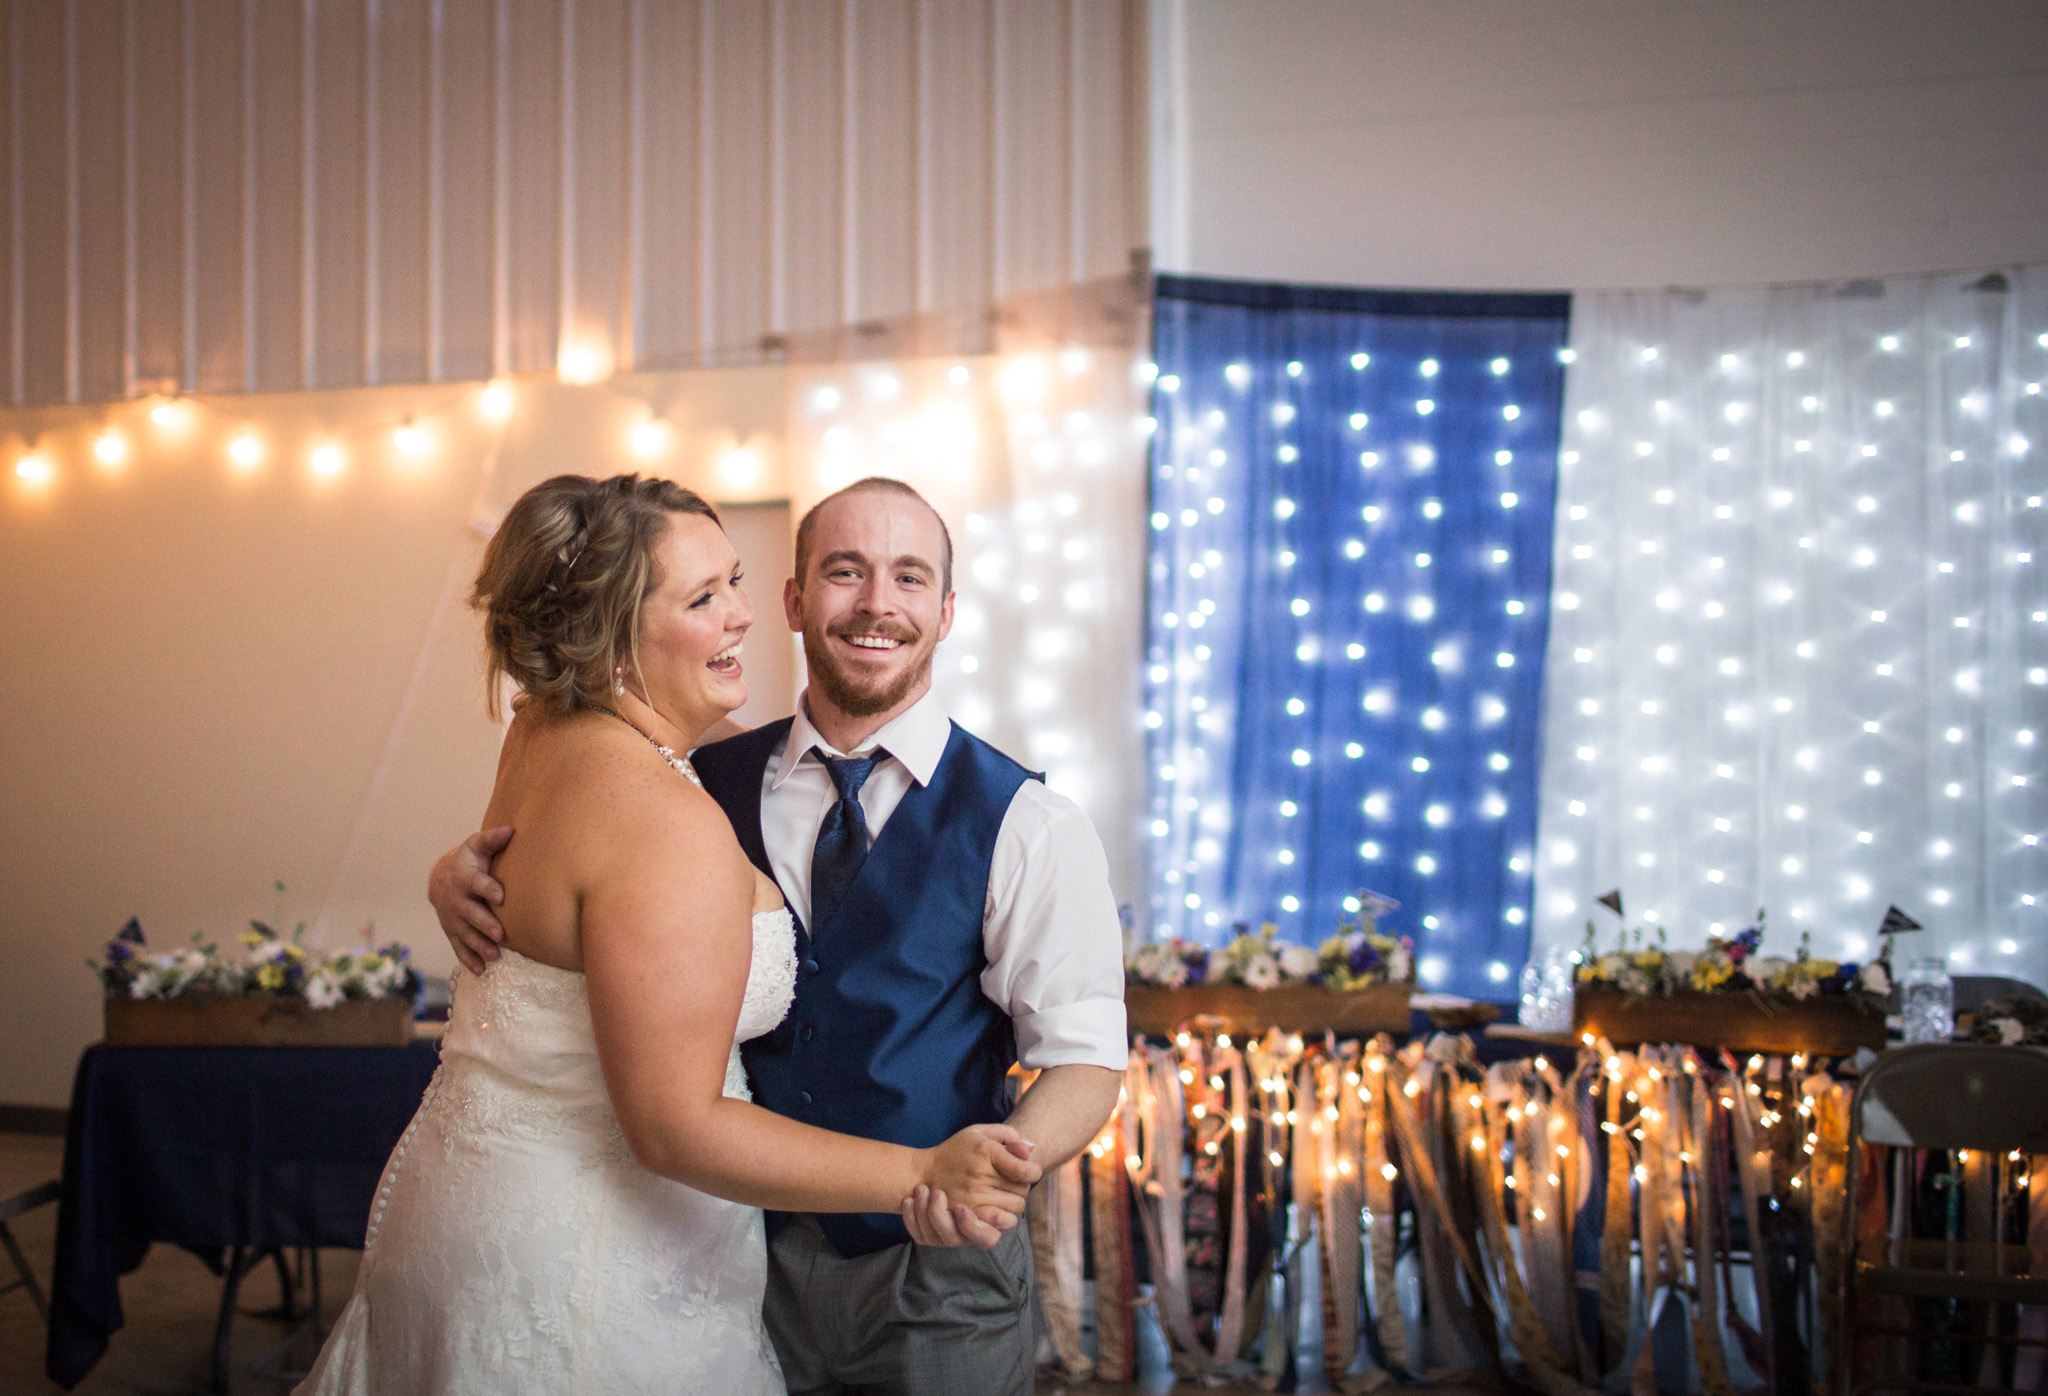 Zibell Spring Wedding, Bride and Groom, Powerful, Connected, Exploration, Laura Duggleby Photography -167.JPG